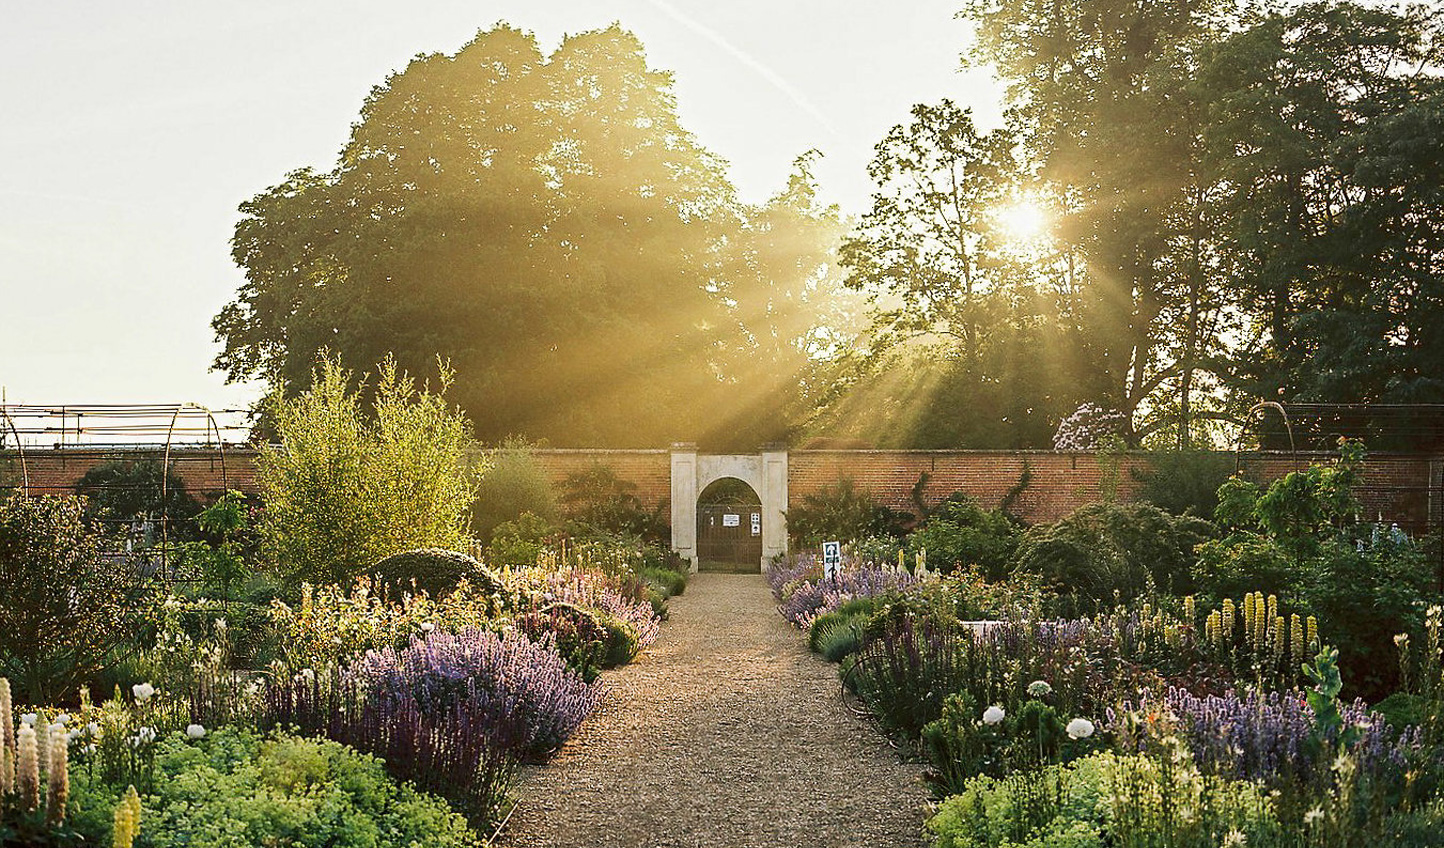 Take a stroll through the beauty of the Walled Gardens